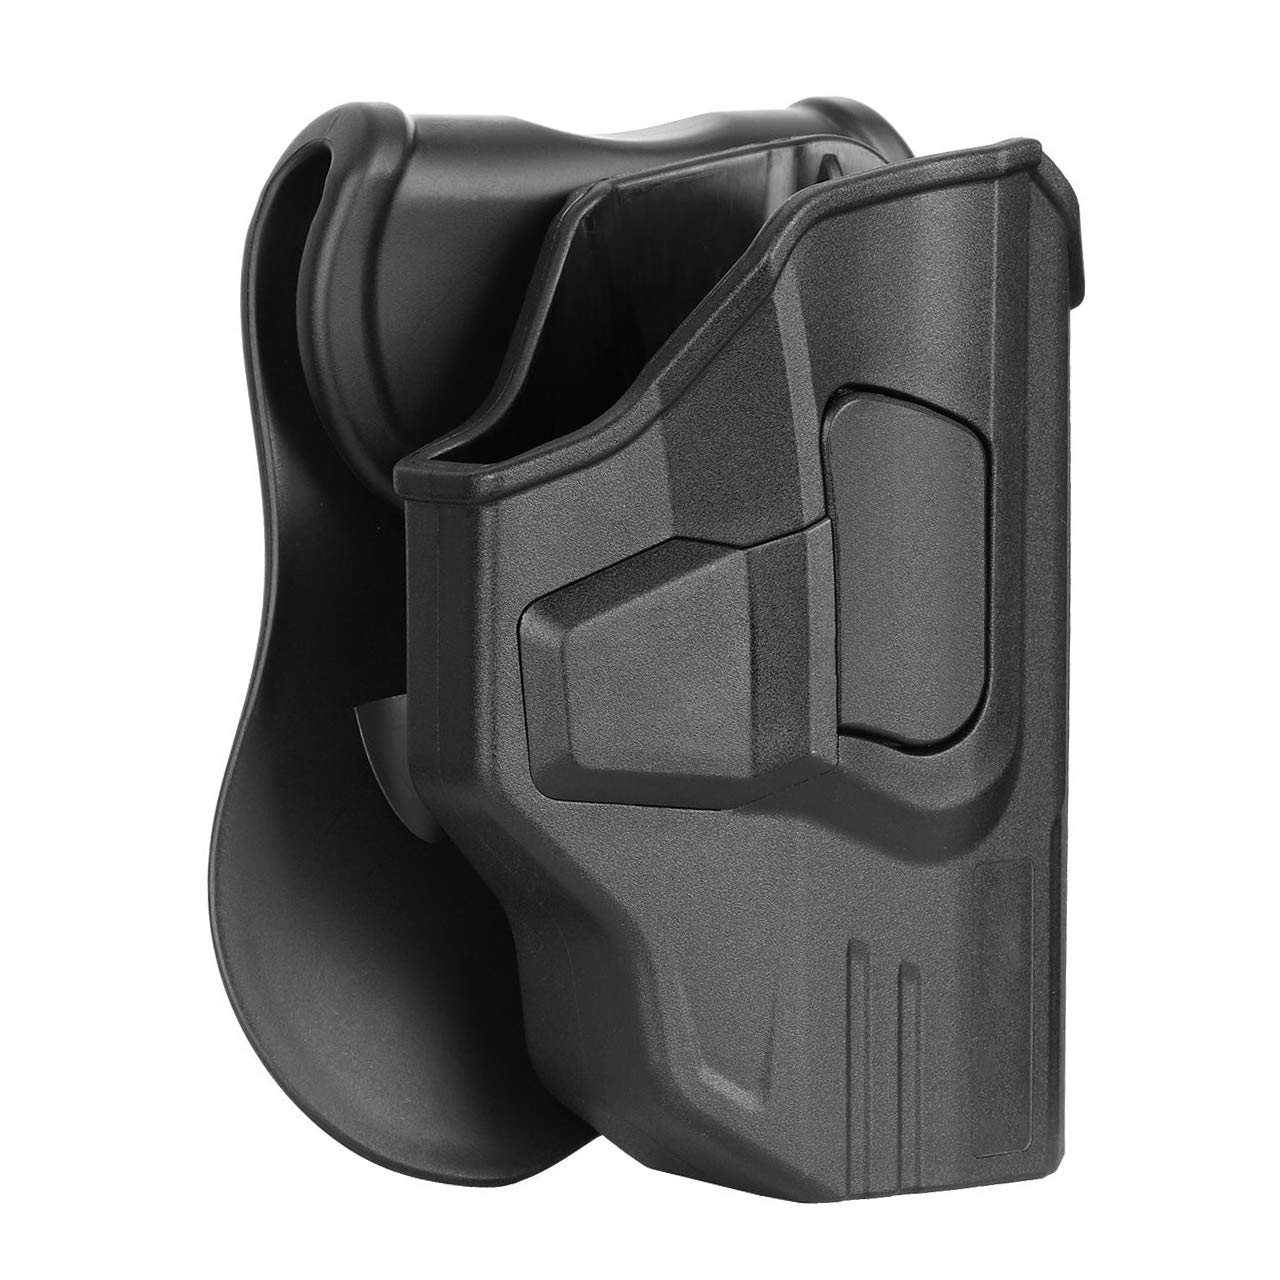 """S&W M&P Shield 9mm / .40 Holster, Tactical Outside The Waistband Belt Holster Fits Smith & Wesson MP Shield 3.1"""" Barrel, OWB Paddle Holster, Right Handed"""